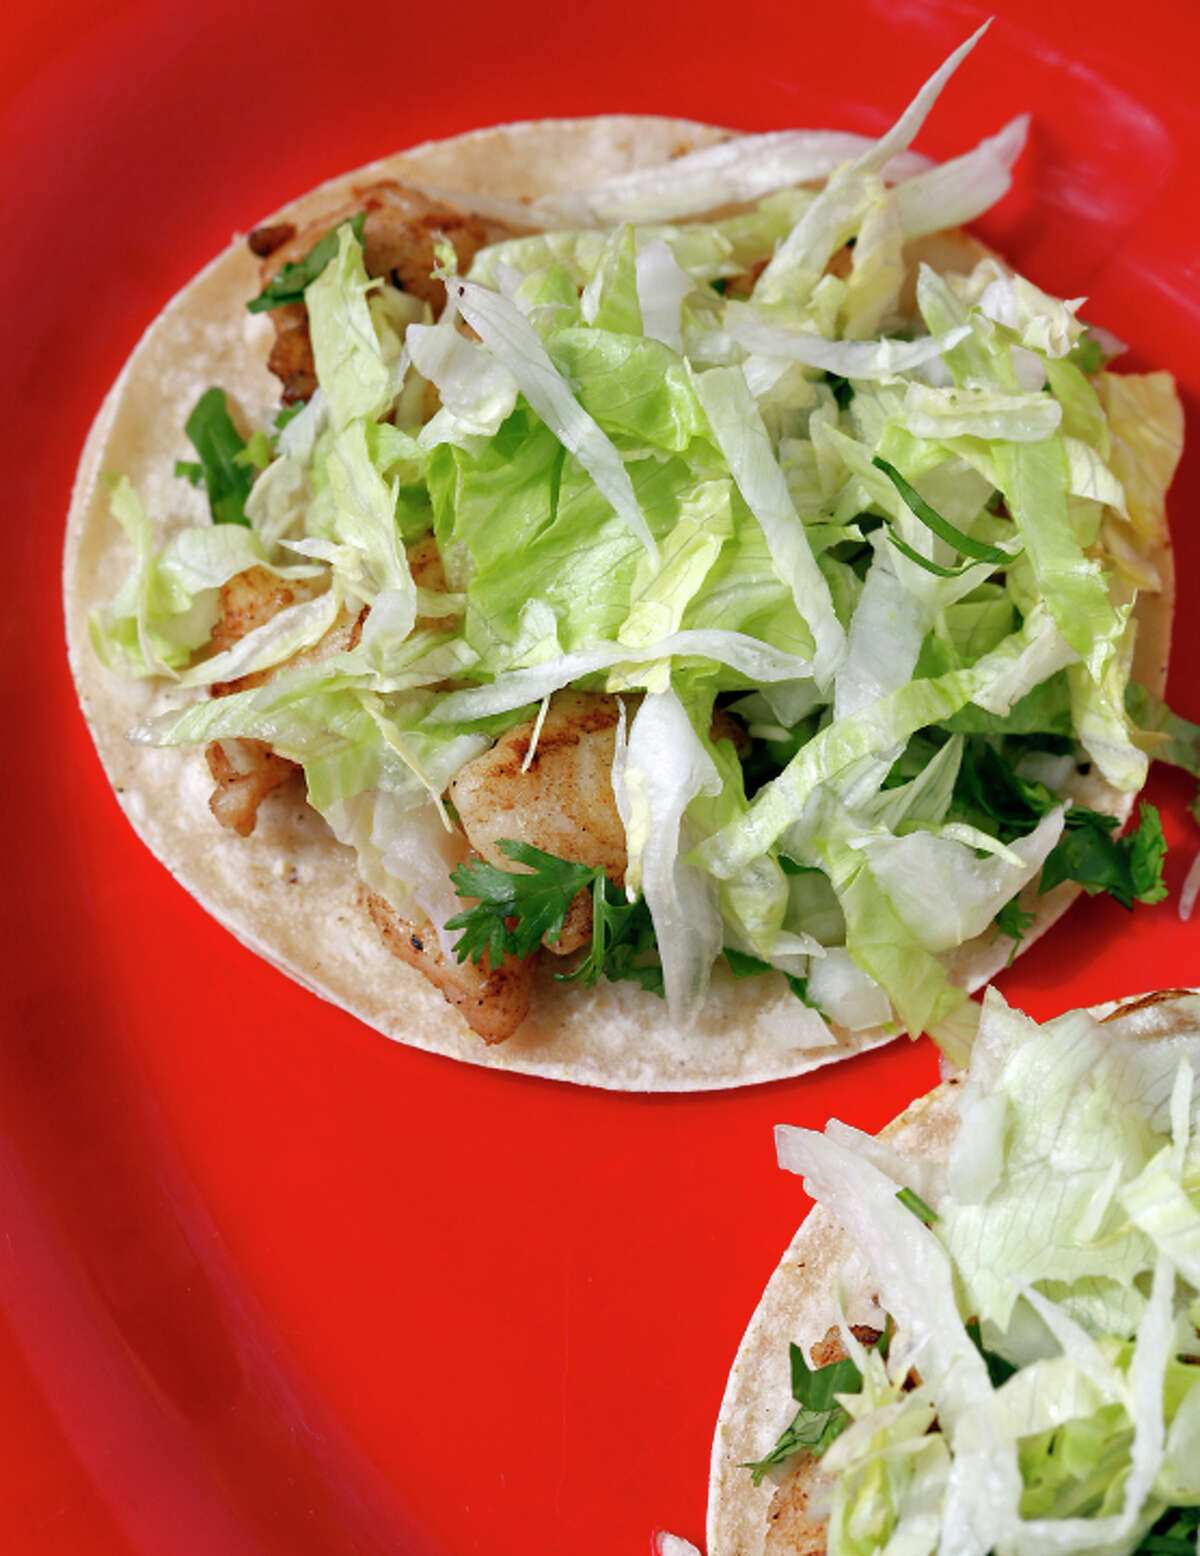 The grilled fish tacos at Rancho Grande Taqueria in Pleasanton, Calif., on Friday, August 8, 2014.